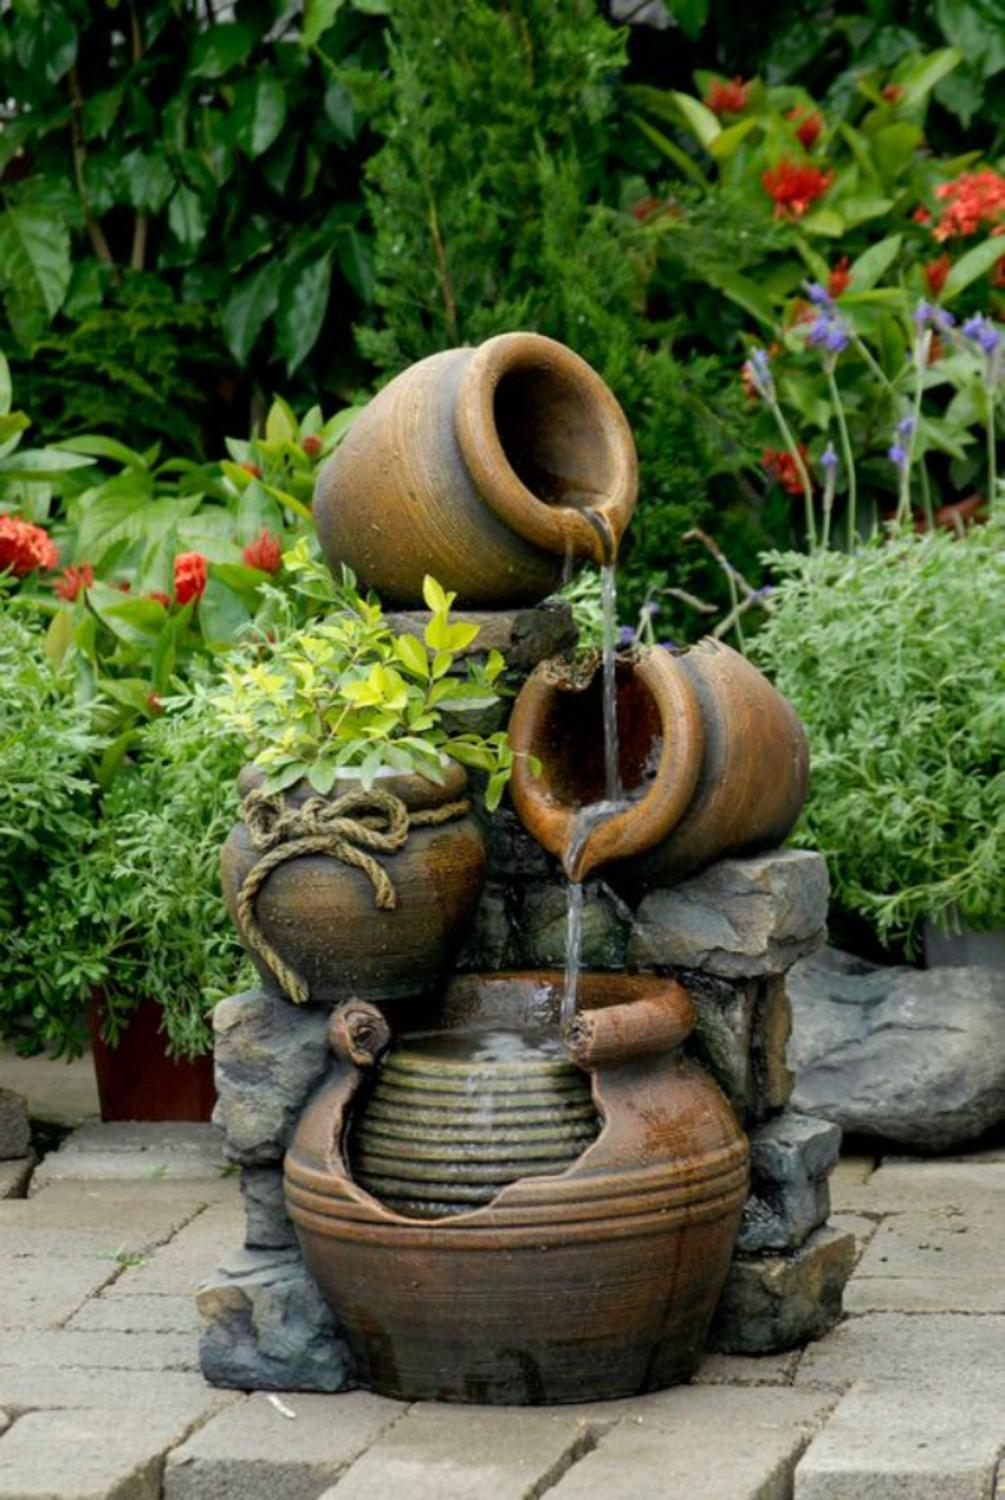 """Click here to buy 23.6"""" Three-Tiered Clay Look Pots Outdoor Patio Garden Water Fountain with Planter by CC Outdoor Living."""